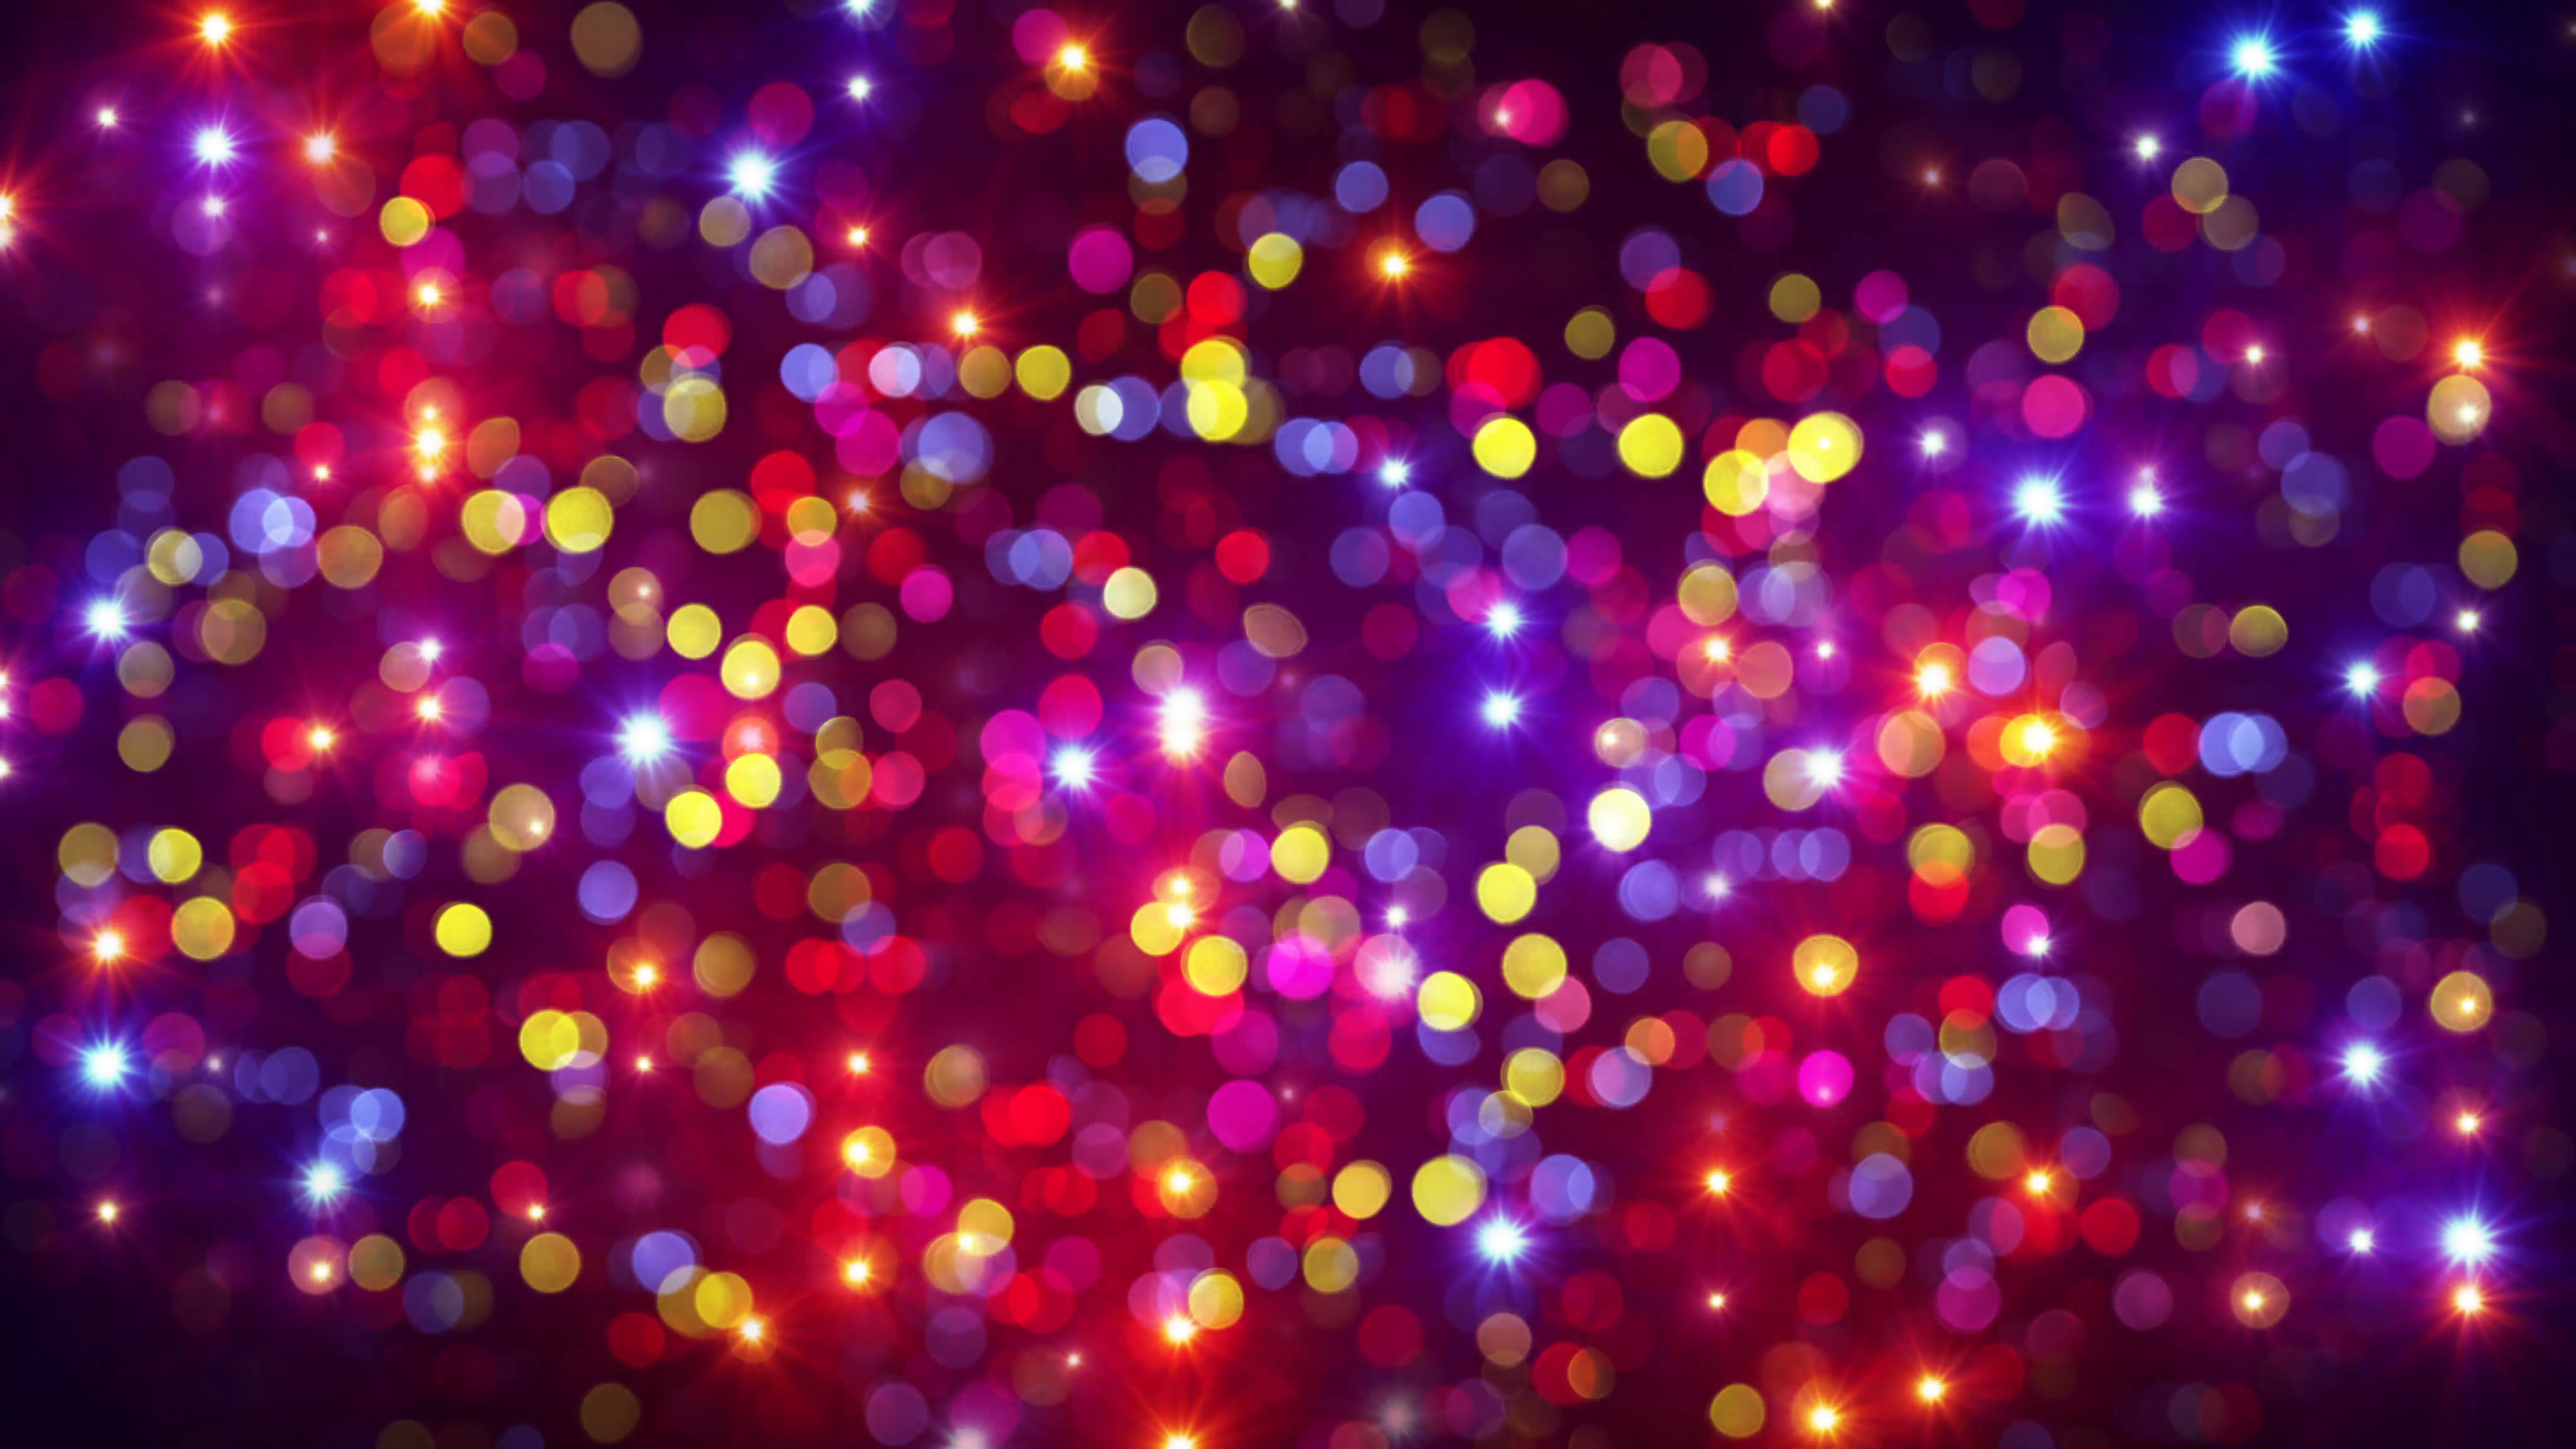 disco party light flashes and bokeh background loop 4k (4096x2304 ...